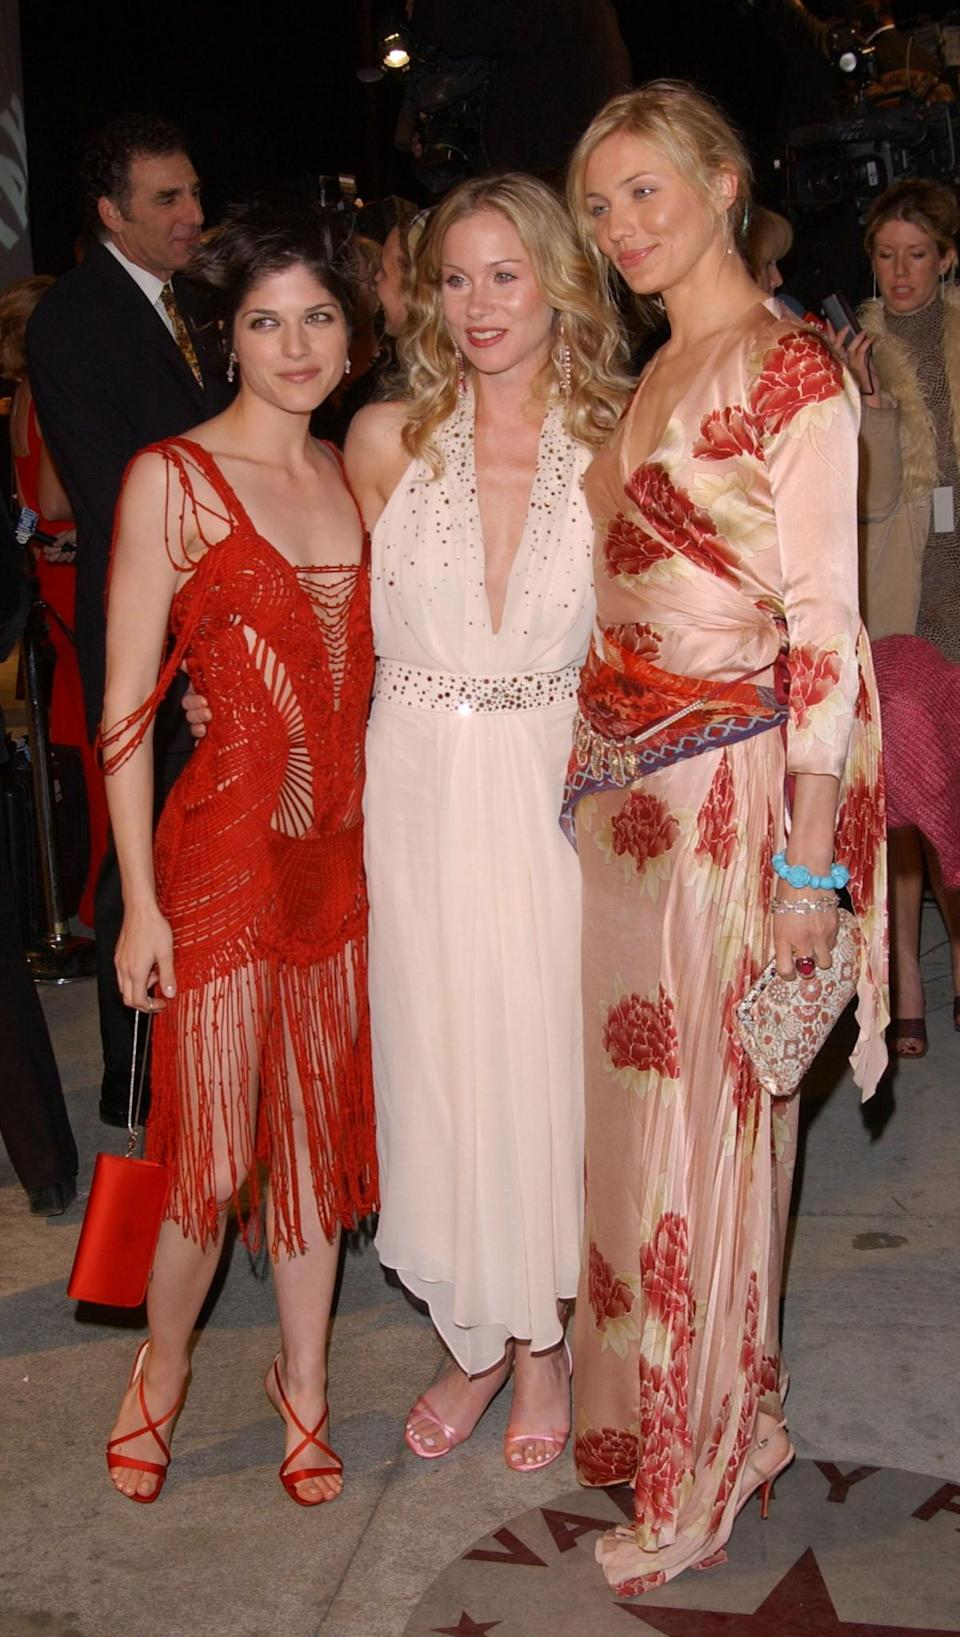 <p>Blair's 2002 dress seems to have unravelled, and poor Christina Applegate for being sandwiched between these two. <em>[Photo: Sebastian Artz/Getty]</em> </p>